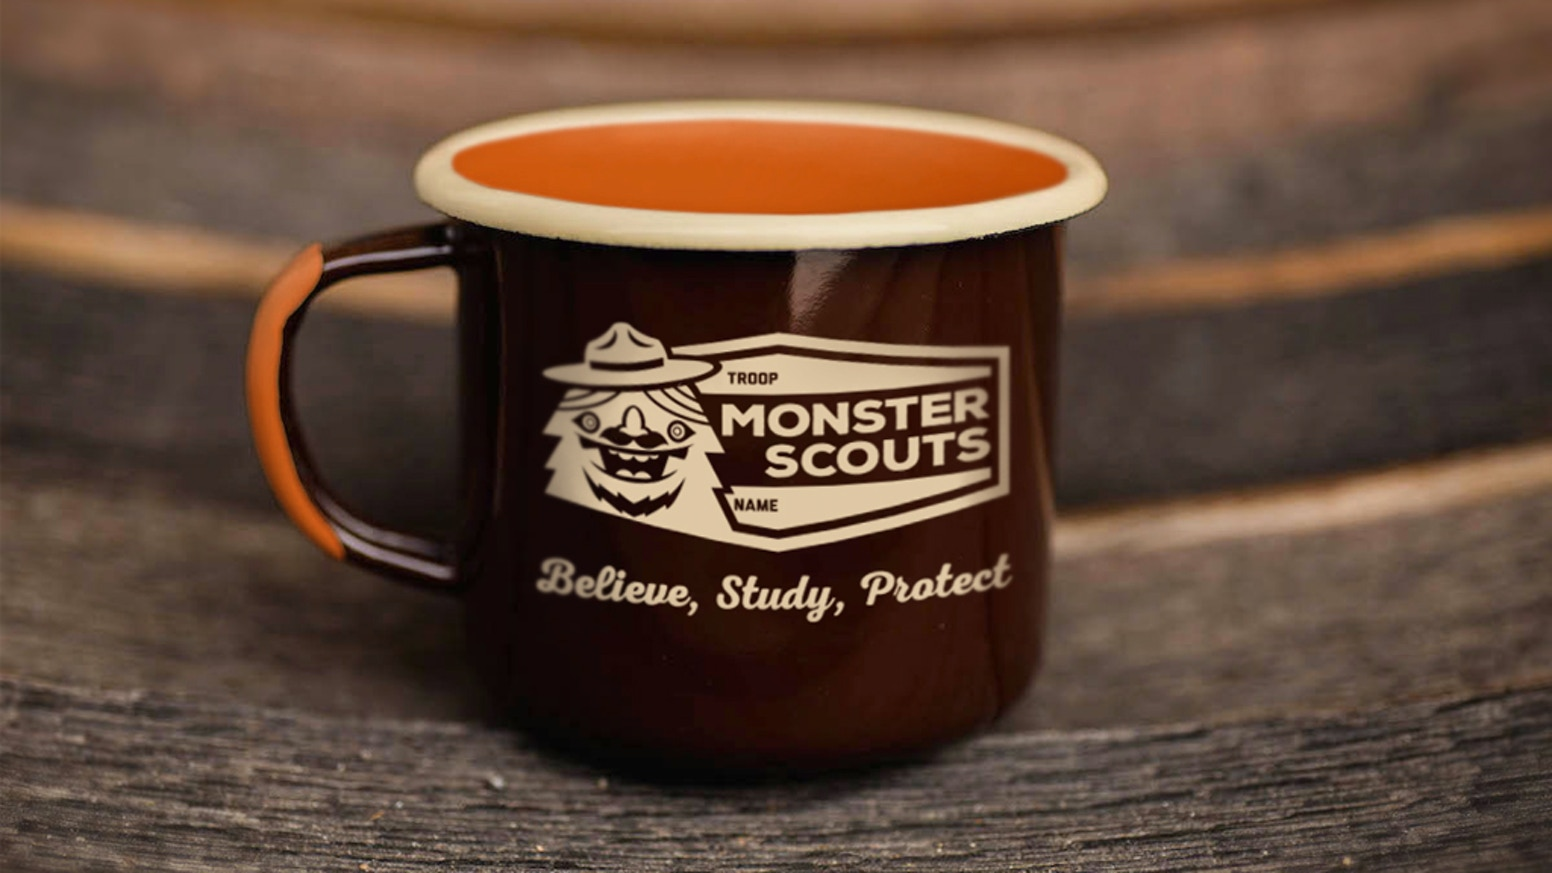 Monster Scouts: Nerds in nature. Campaign: New Badges, Handbook, an Enamel Camp Cup, and pin. Keep us moving ahead!